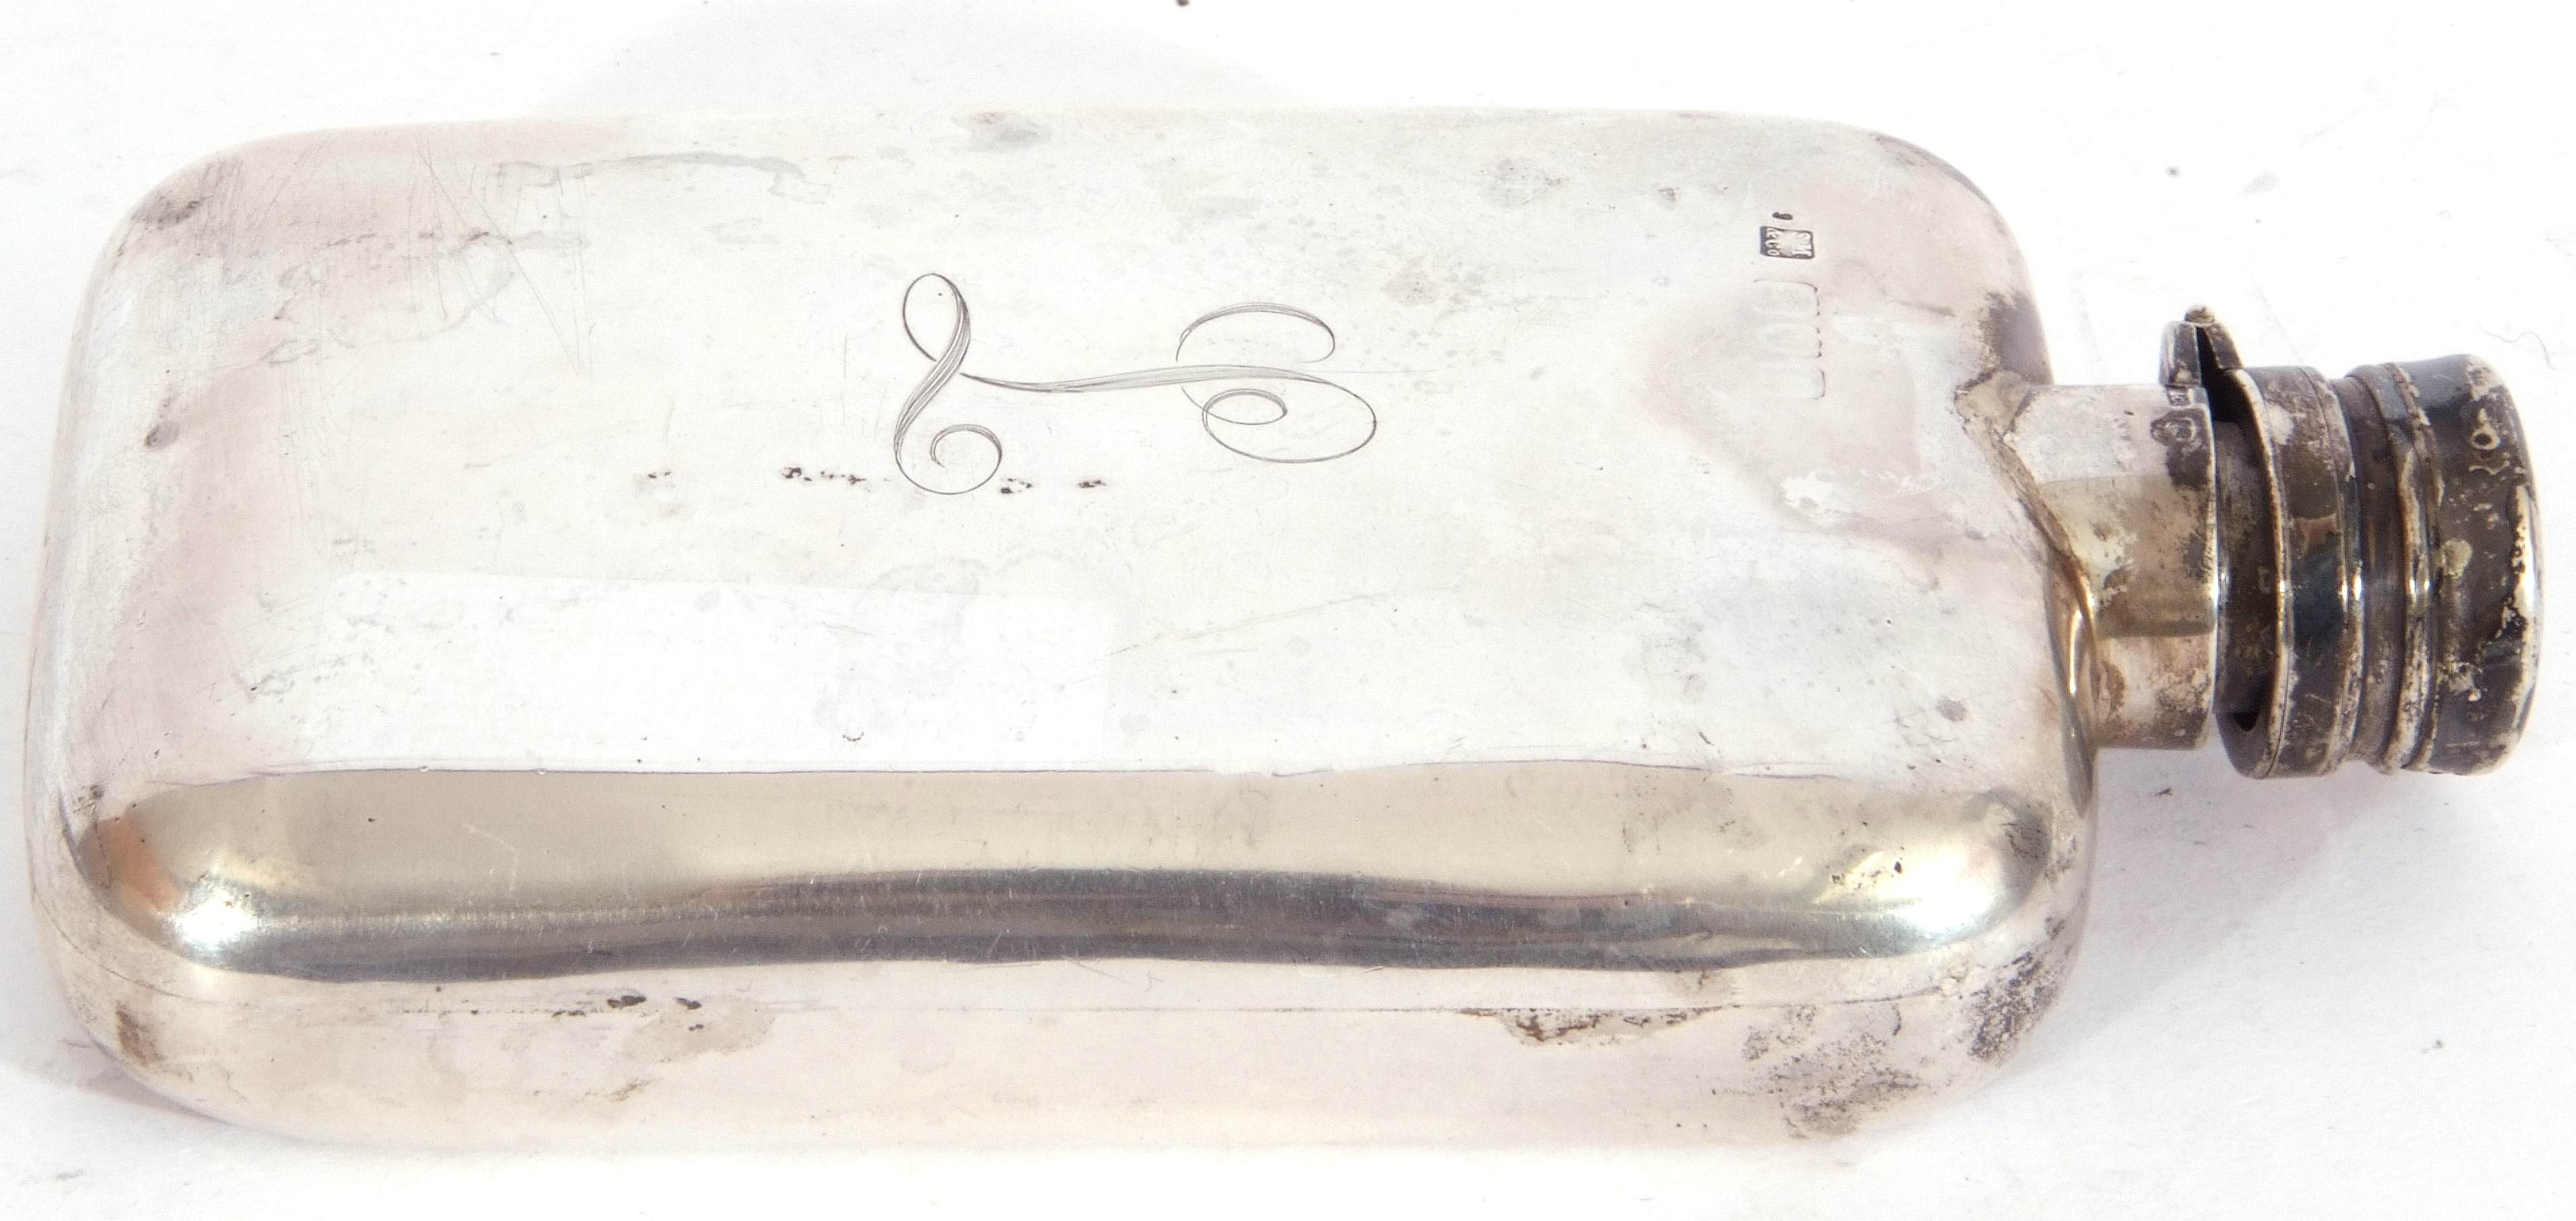 Early 20th century silver hip flask, circa 1920, of rectangular curved form with rounded corners, - Image 2 of 5